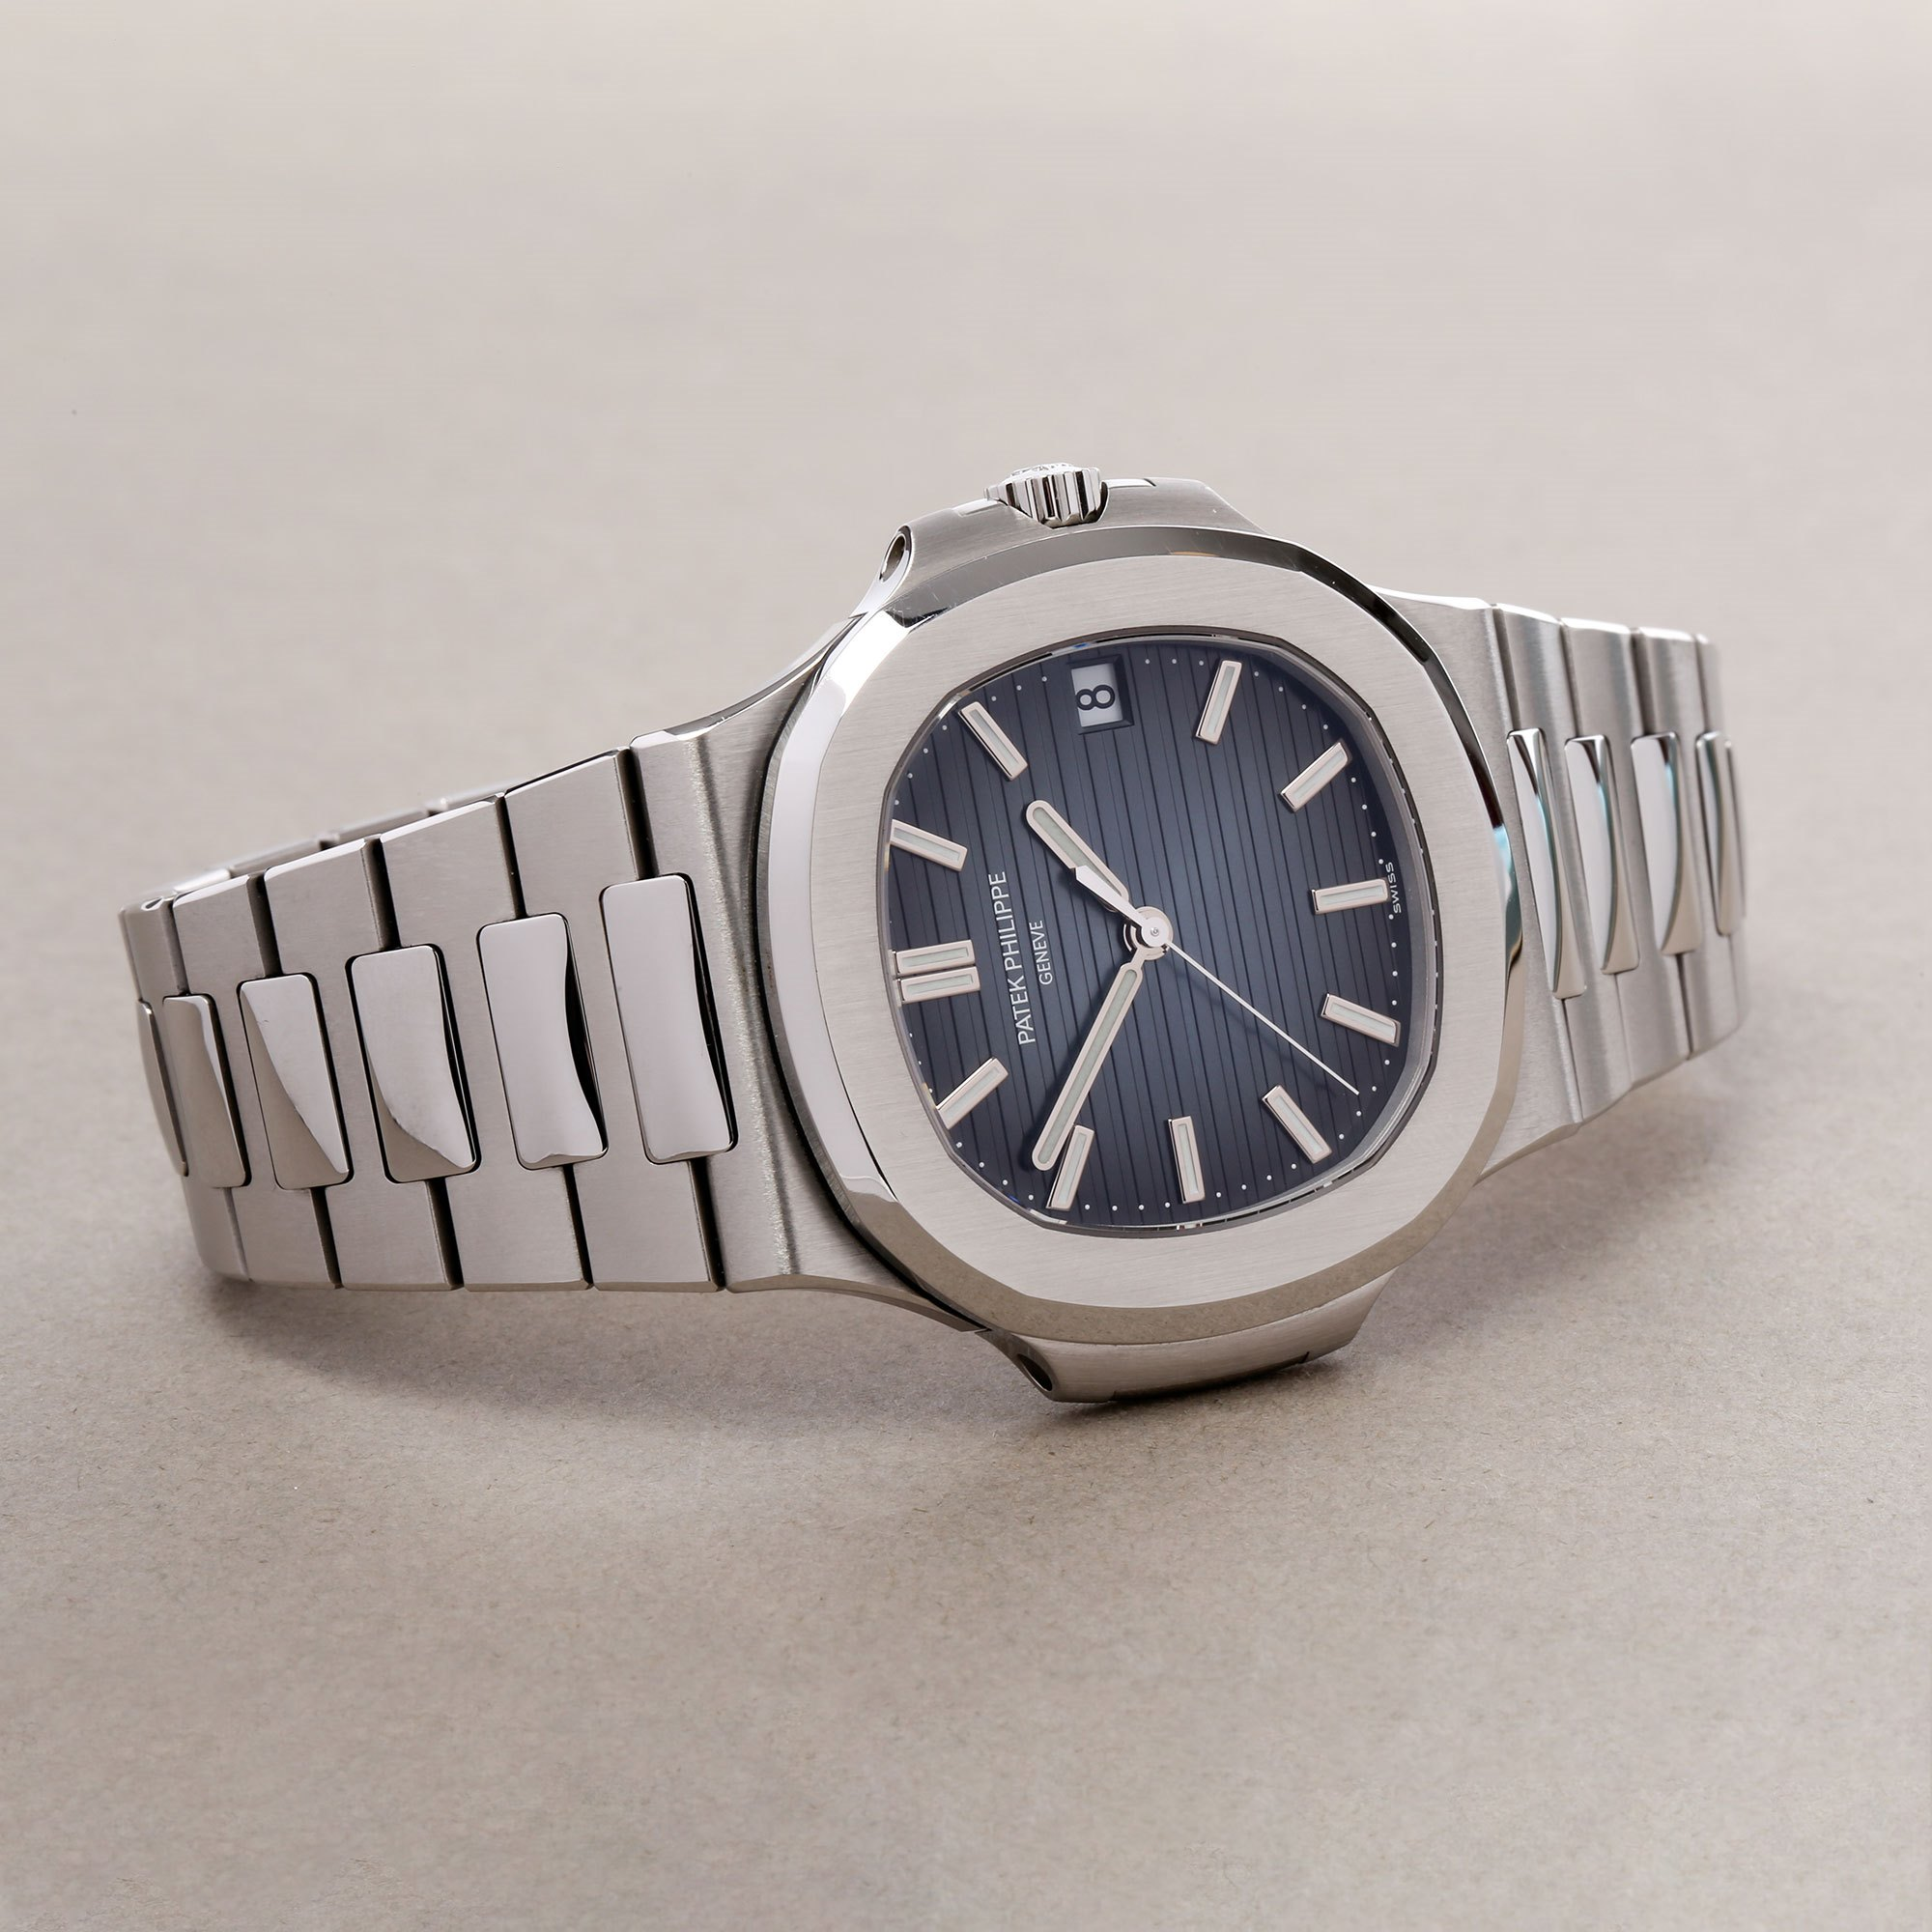 Patek Philippe Nautilus Unpolished Stainless Steel - 5711/1A-010 Stainless Steel 5711/1A-010